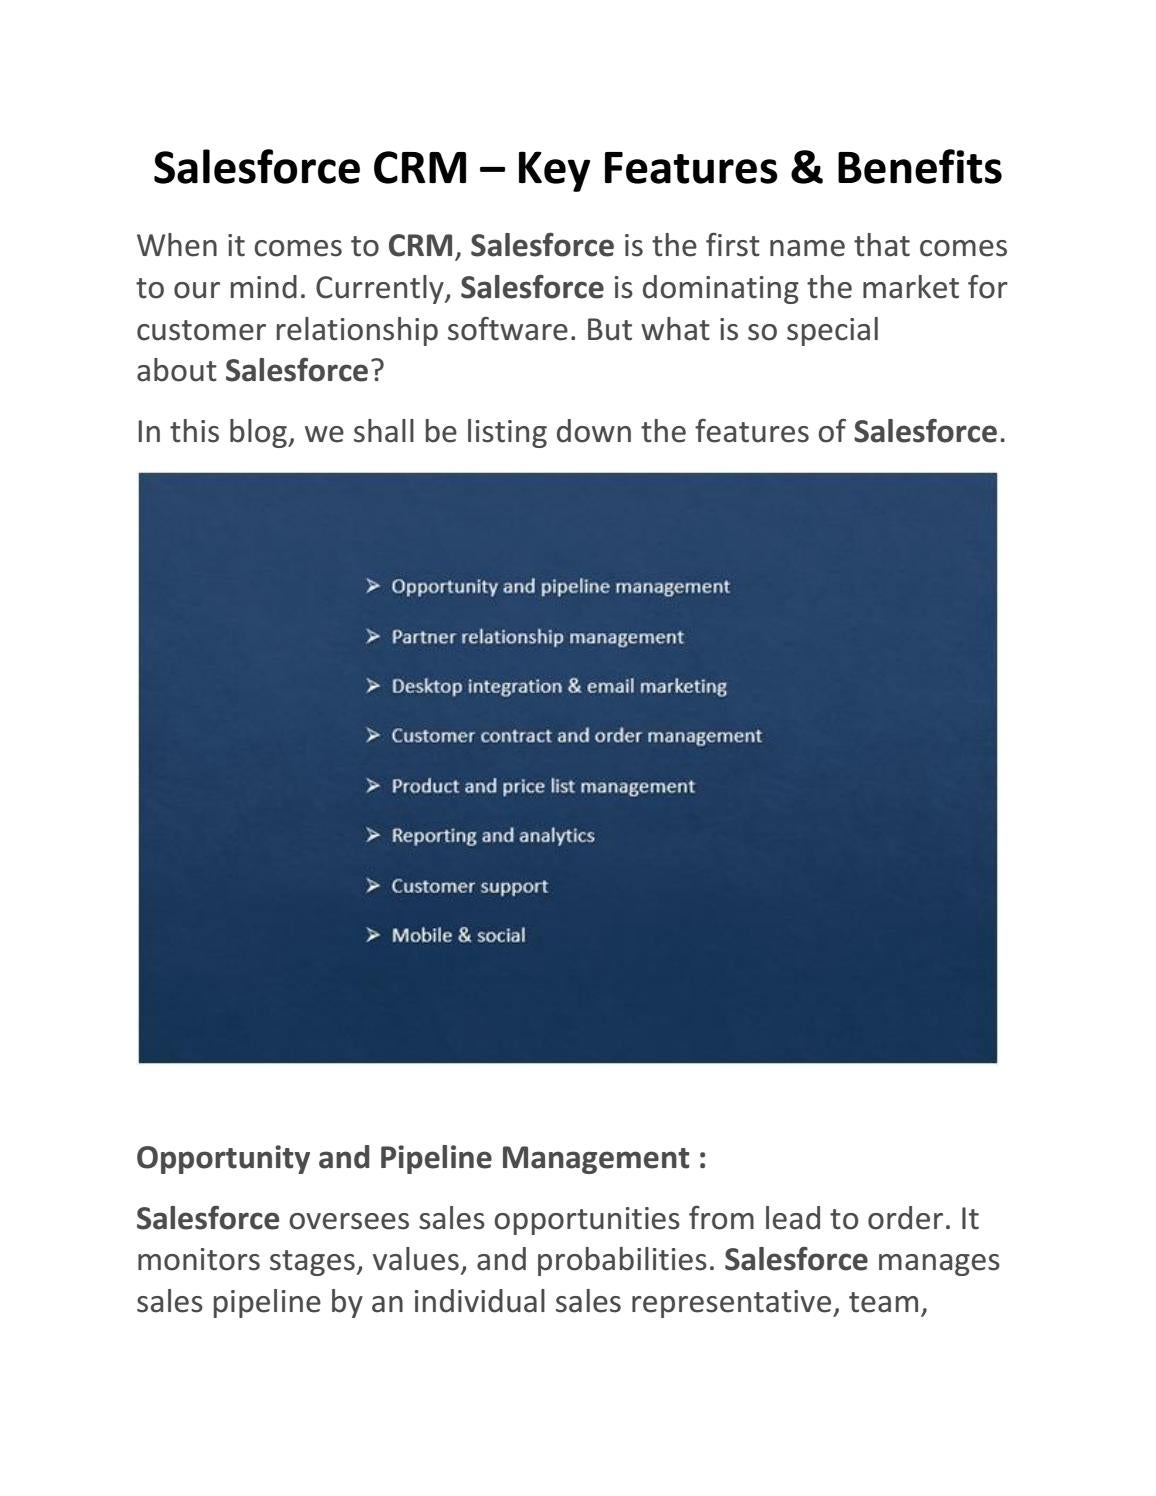 Salesforce CRM – Key Features & Benefits by JanBask - issuu